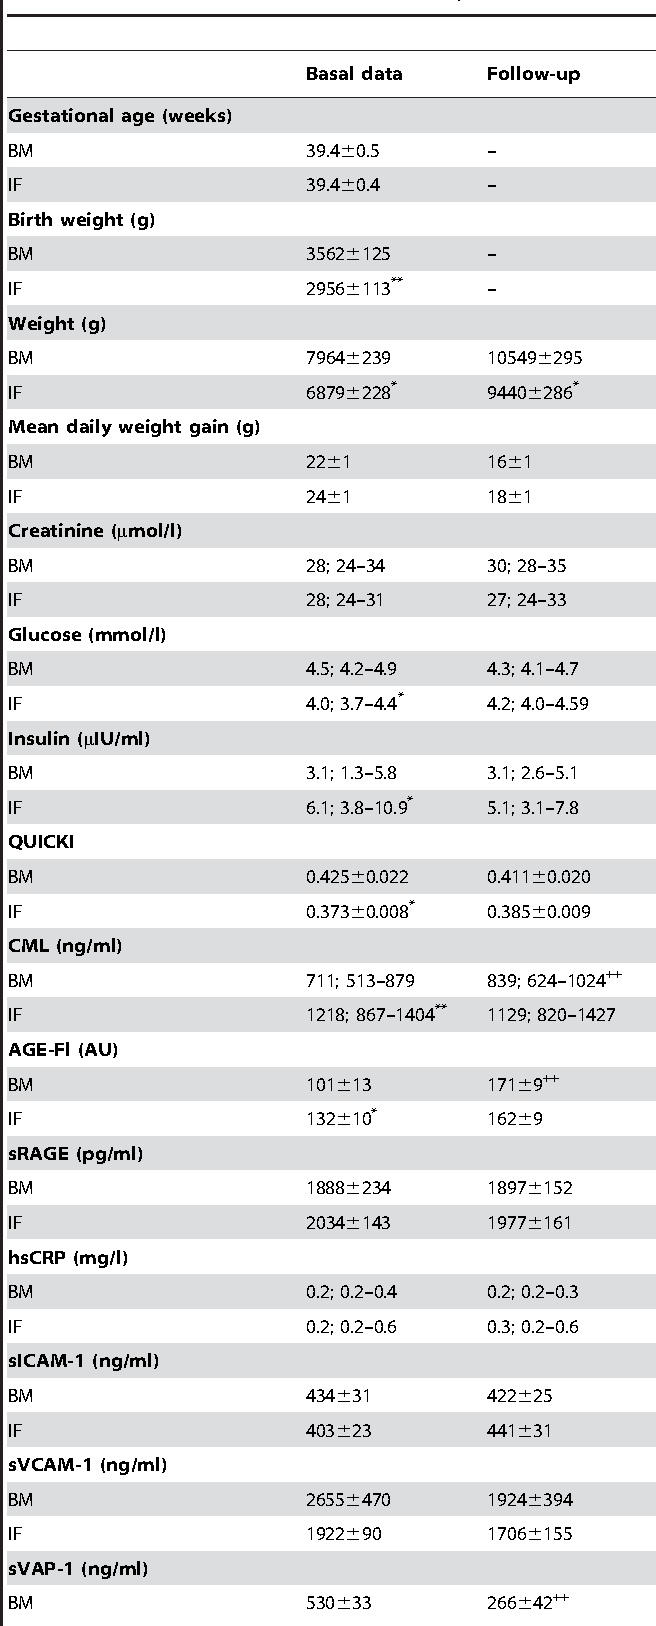 Table 2. Characteristics of the followed-up infants.